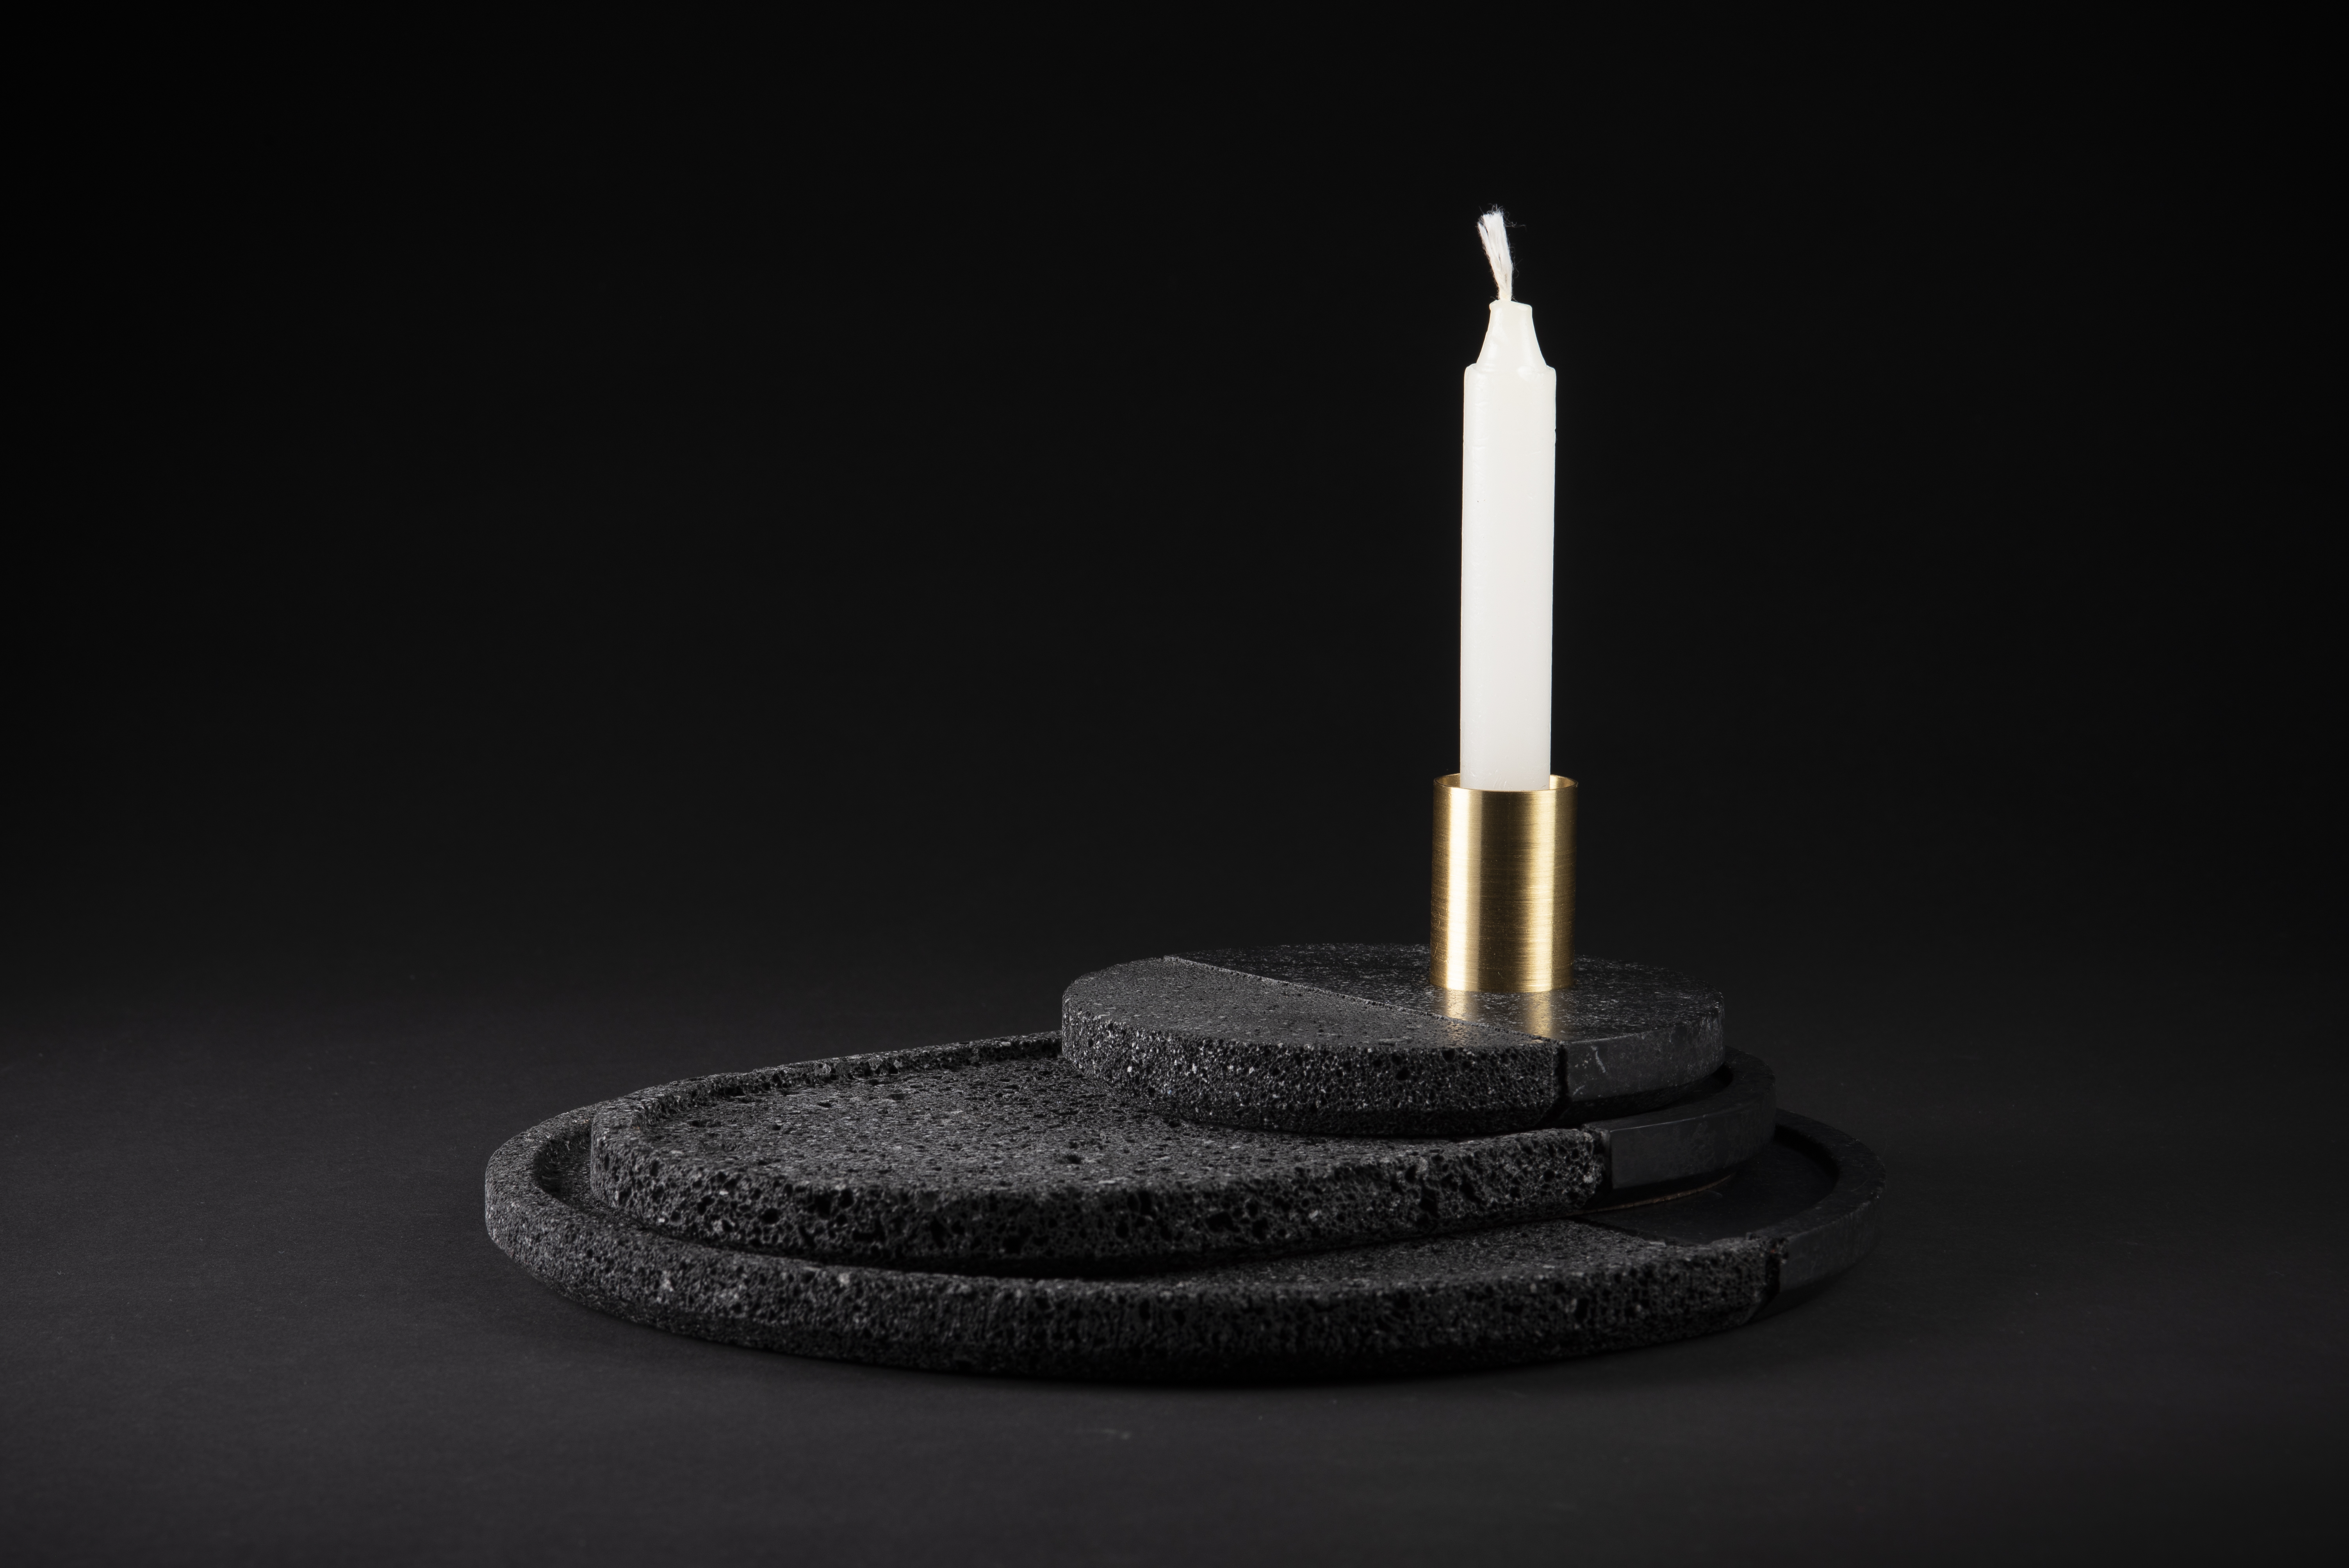 Lava Tray Set - <p>Volcanic rock is a witness to the power of nature: hand–polished by craftsmen with a millenary tradition, its unruly nature is transformed into a sensible and human object. With their dual texture, the collection of Lava plates is as much an homage to Mexican tradition as it is a glance in the direction of modernity. A brass accent completes the harmonious balance and reveals that Lava plates are as decorative as they are functional. Available in sets of 3 plates.</p>  | Matter of Stuff